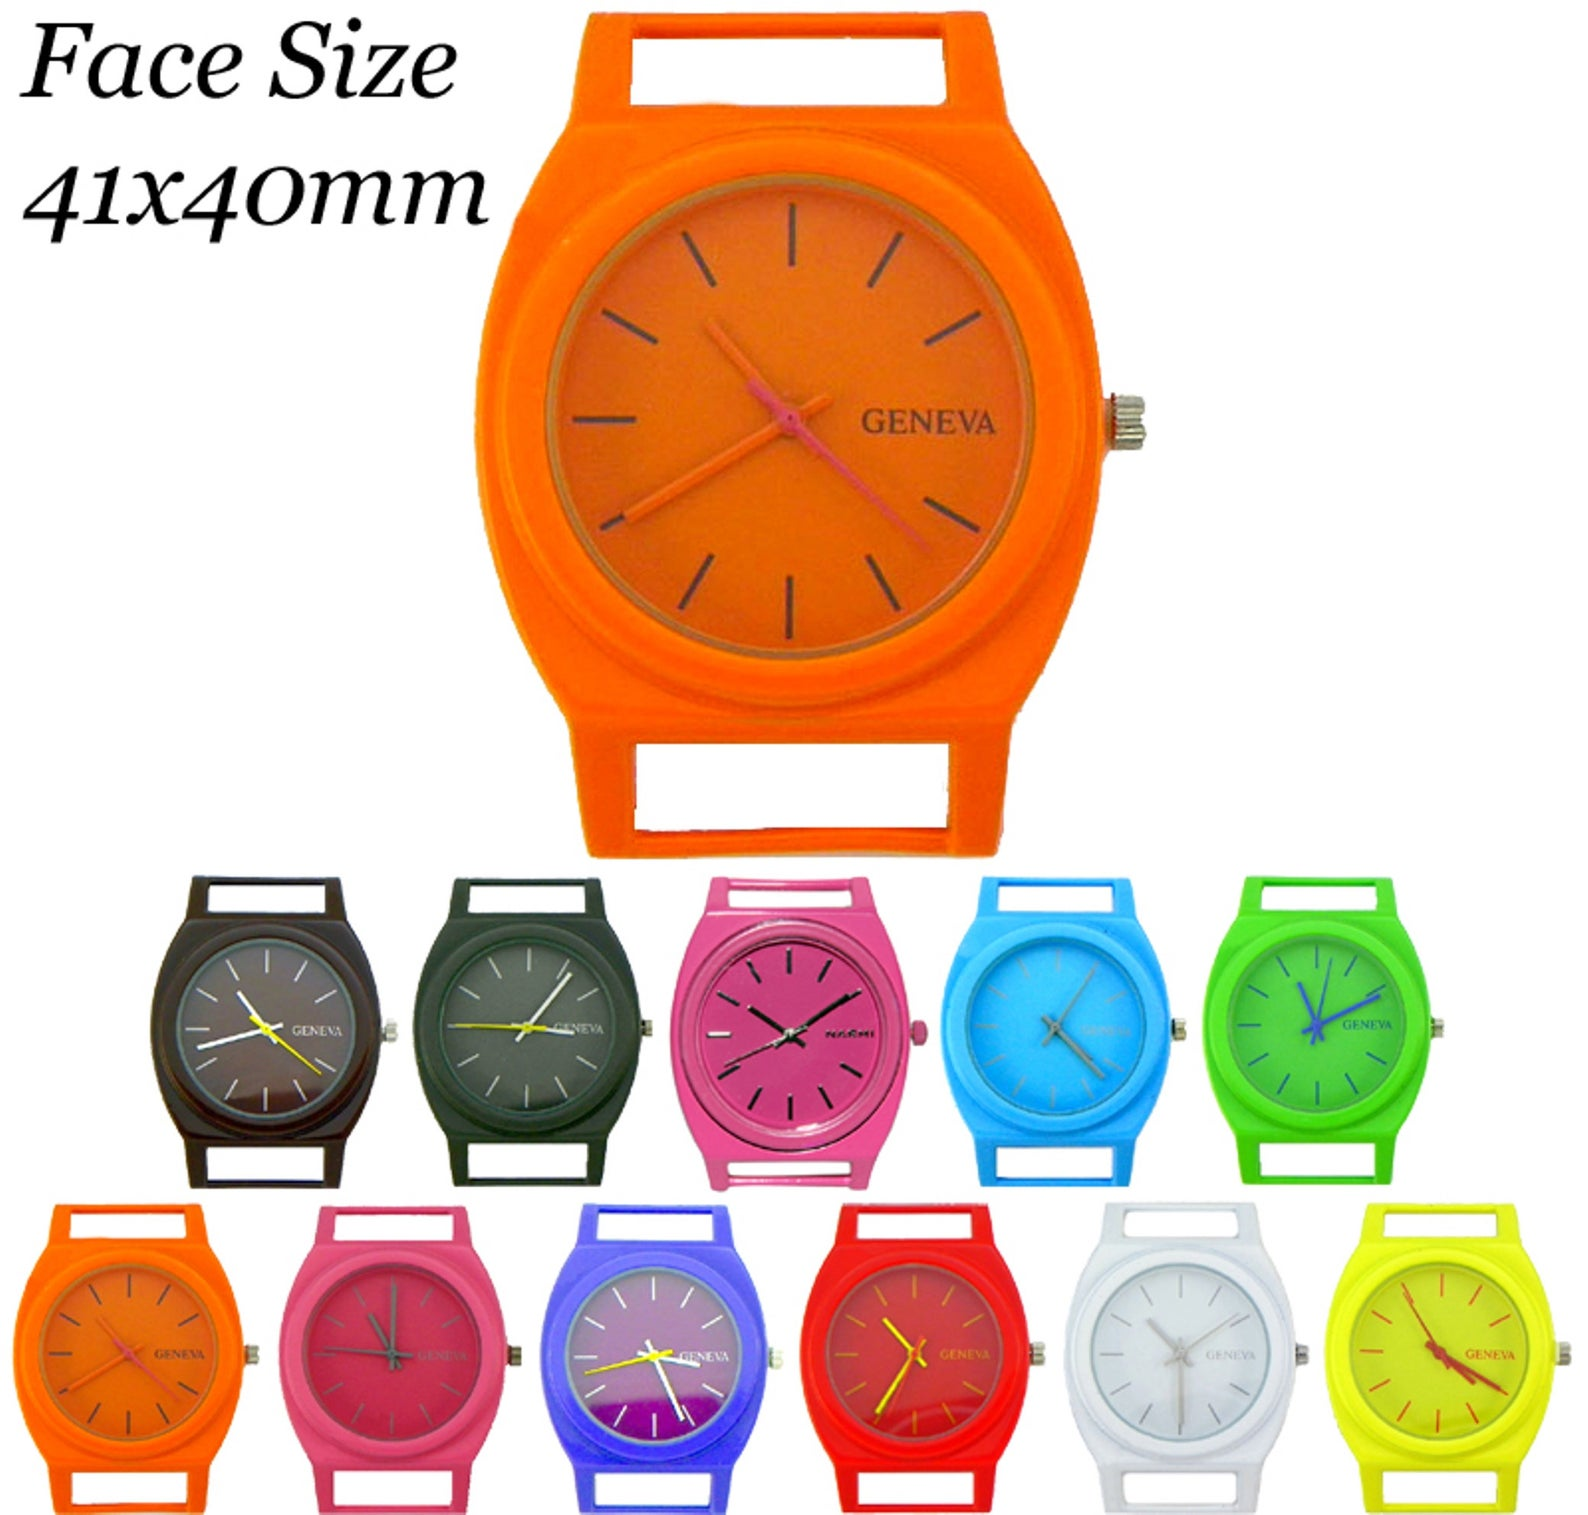 Contemporary Solid Bar Ribbon Watch Faces 41x40mm